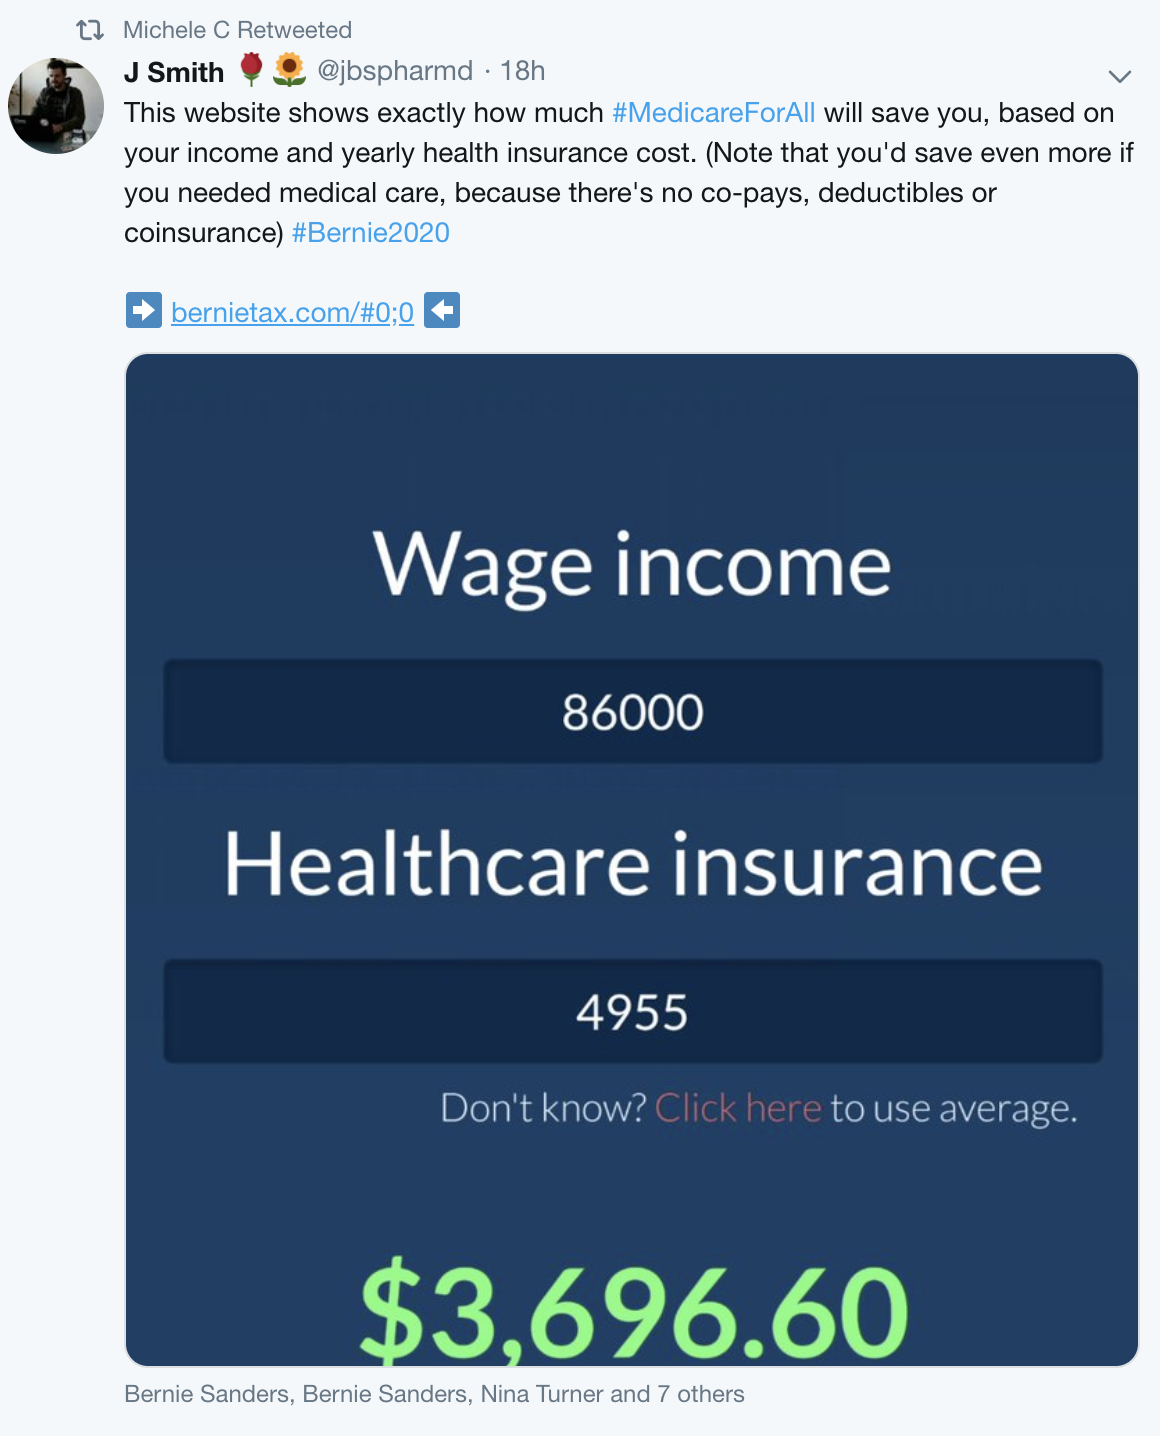 Health Insurance Cost, Medical Care